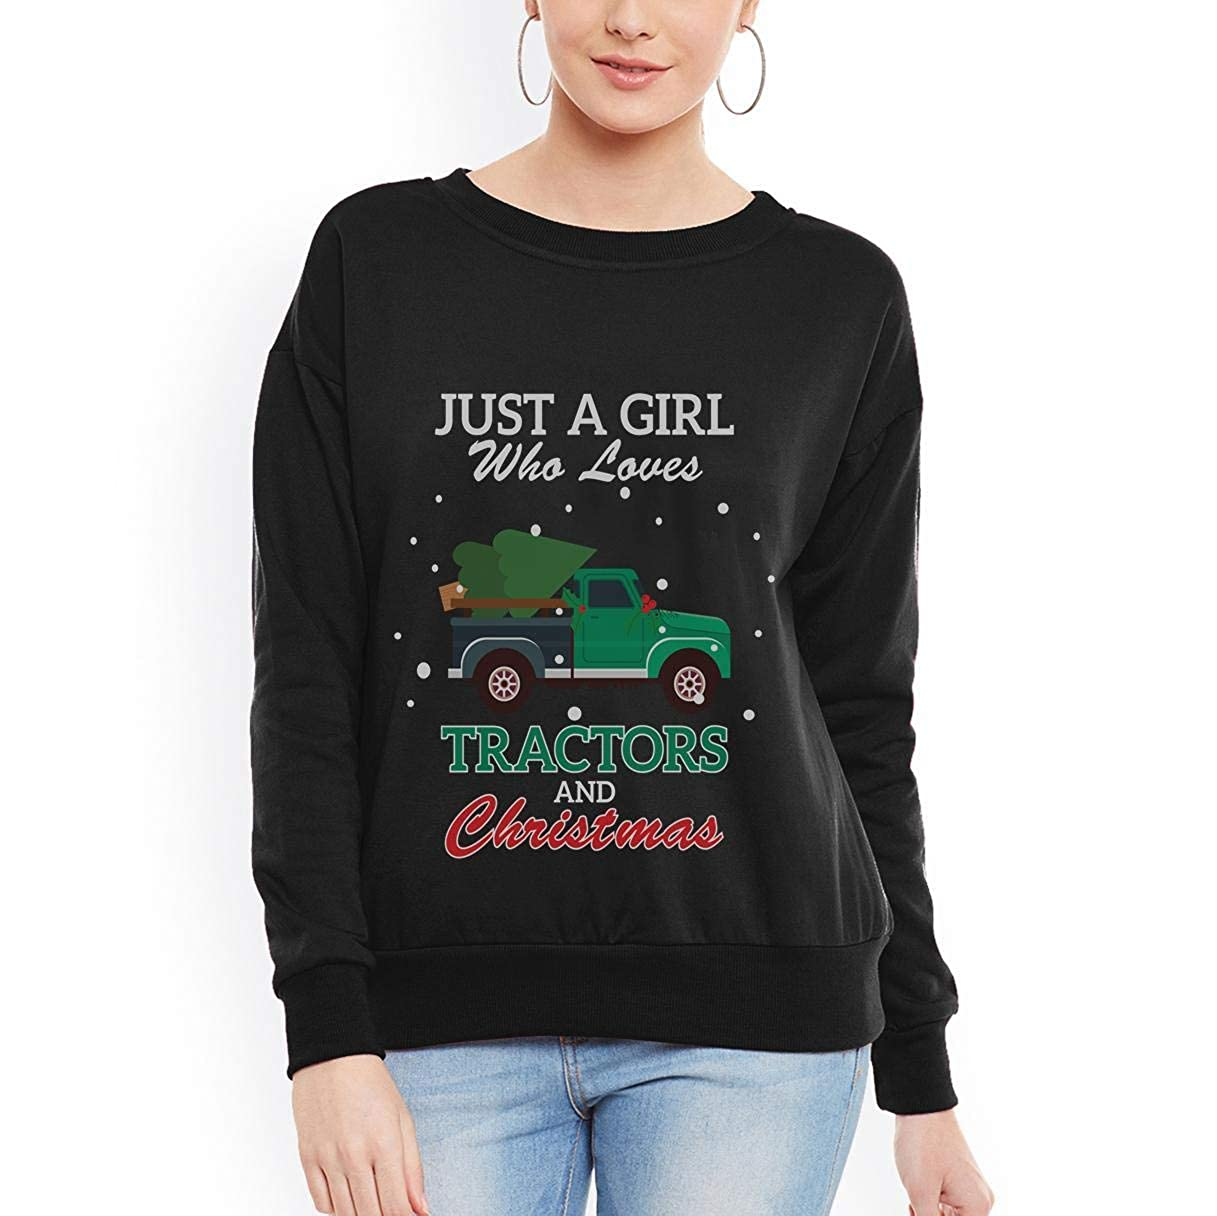 Just A Girl Who Loves Tractors and Christmas Funny Farm Girl Women Sweatshirt tee